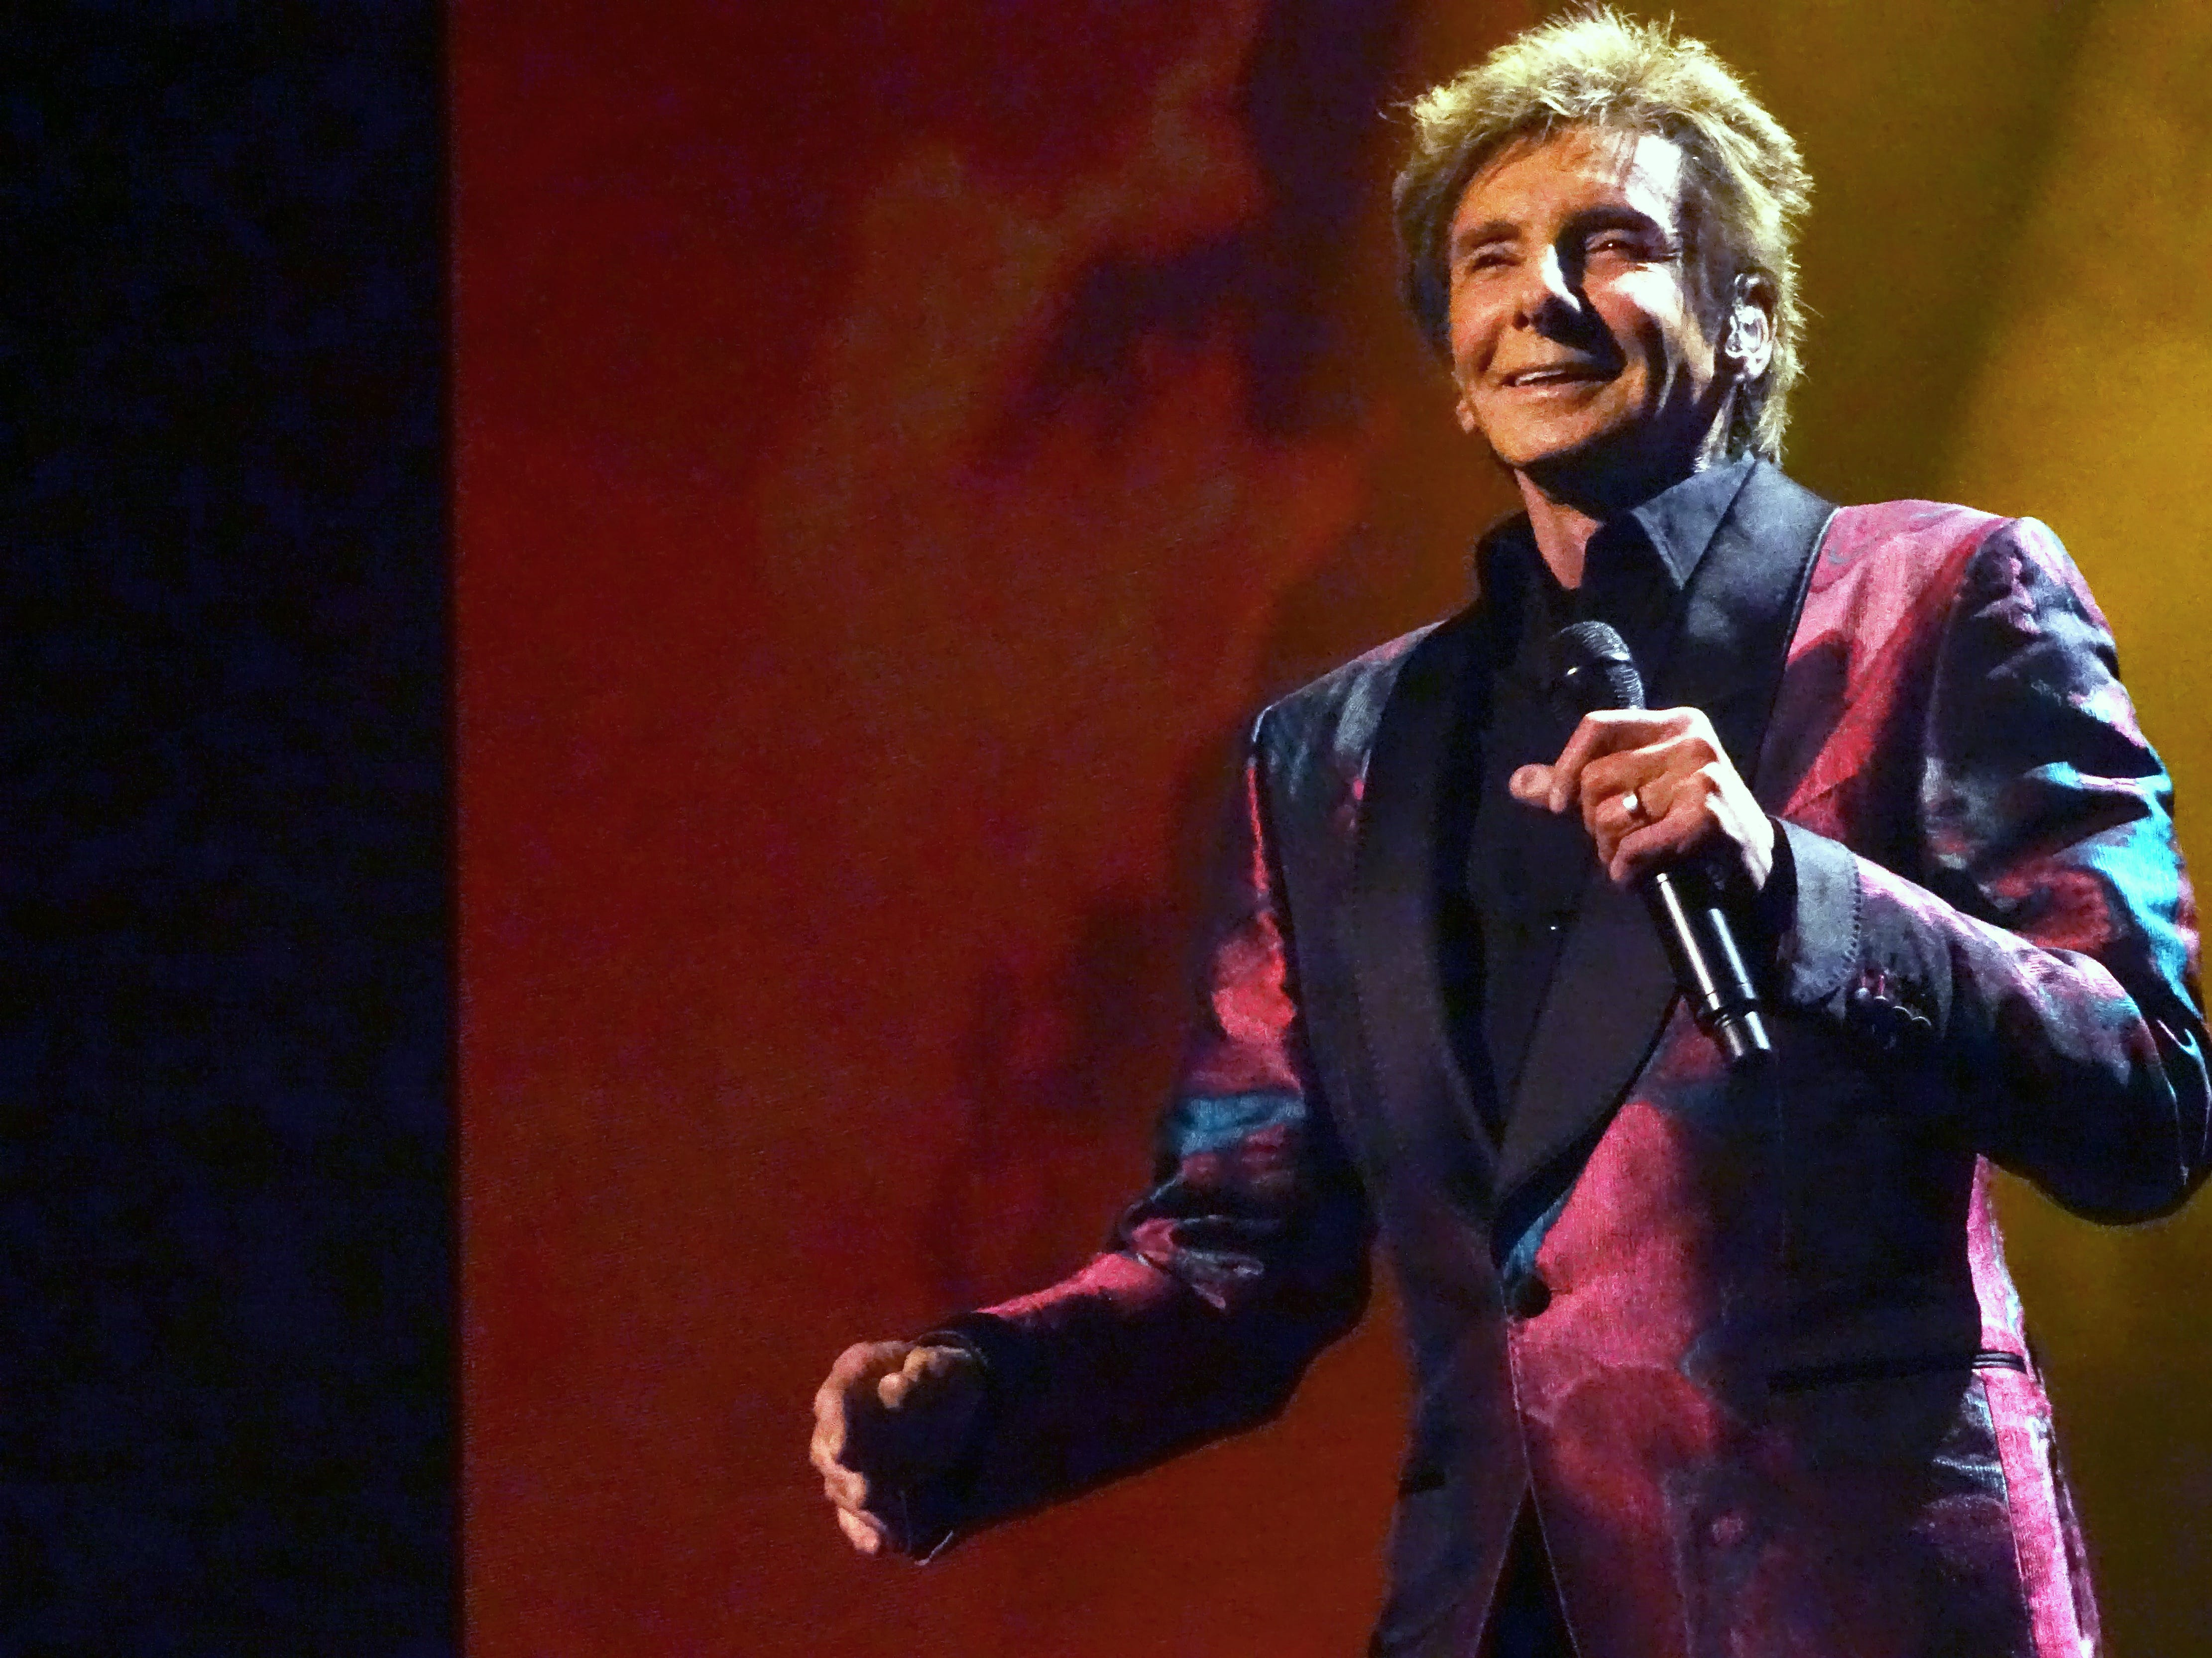 """Barry Manilow loves his audiences. """"I could make them feel good,"""" he says. """"That was a great job."""""""